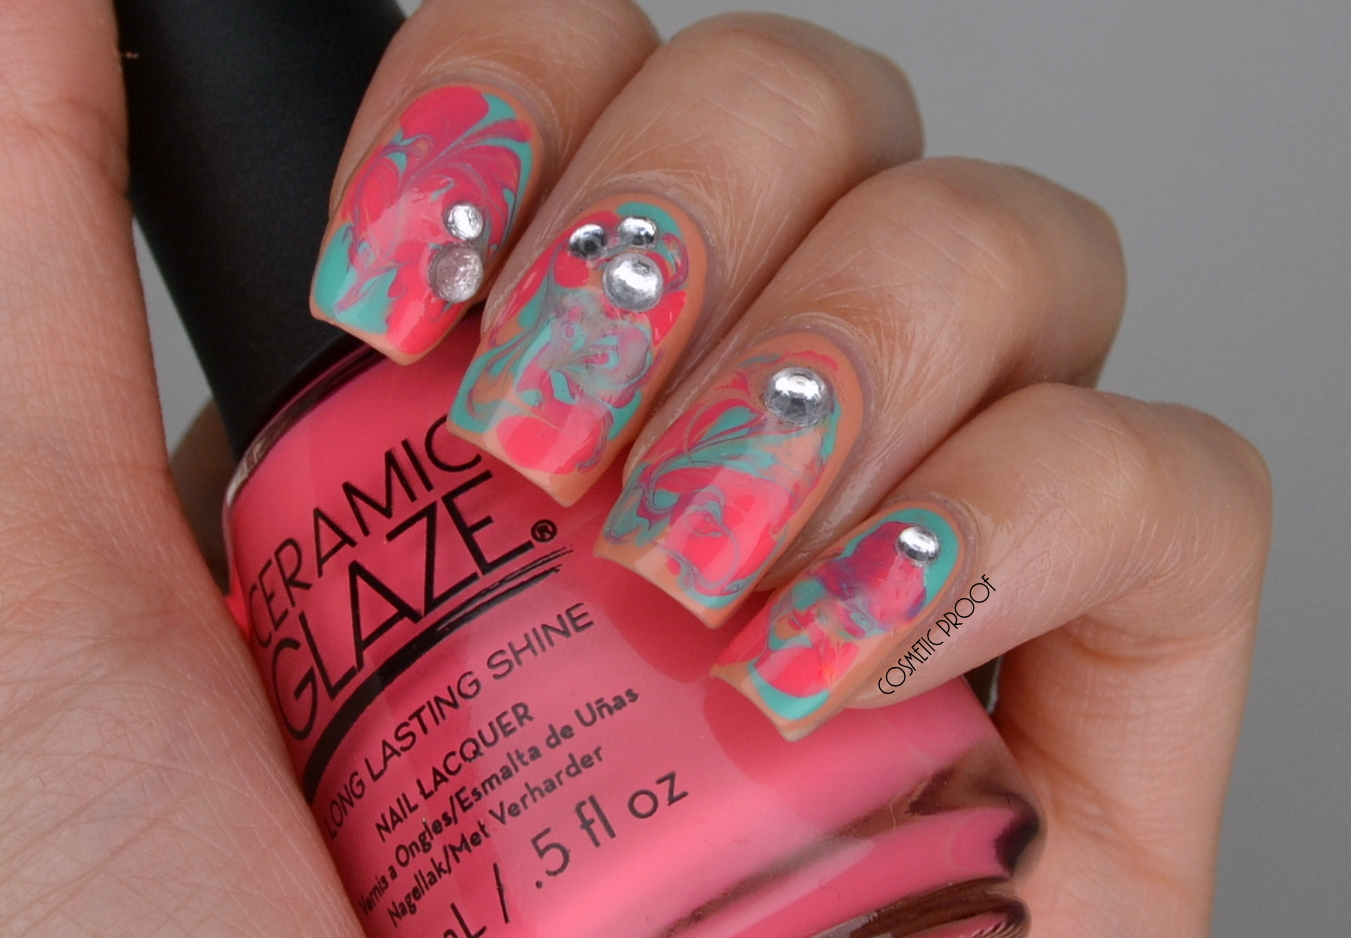 Water Marbling Nail Polish Drying Too Fast | Hession Hairdressing